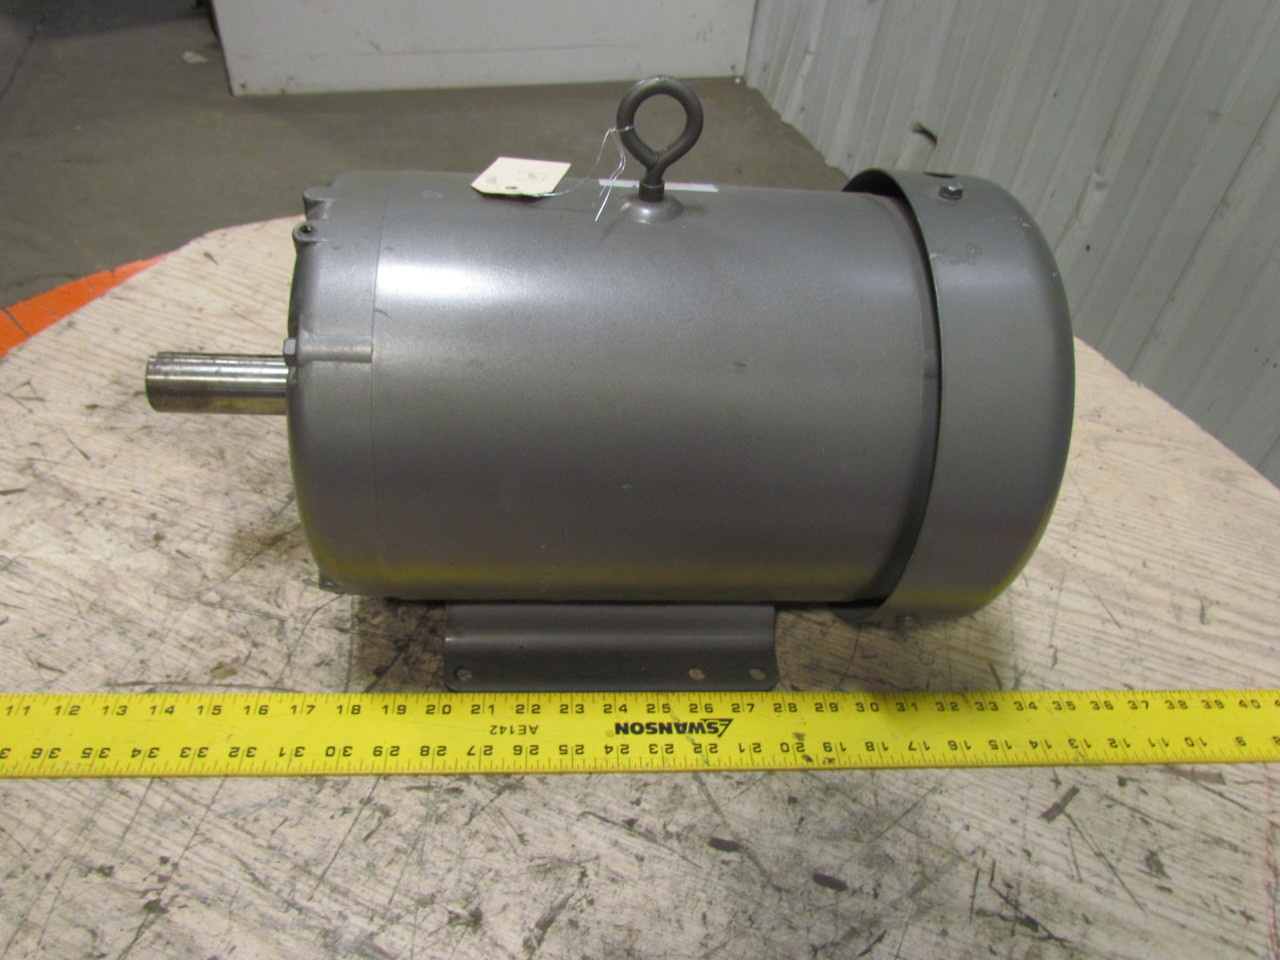 Baldor m1709t 3 phase ac electric motor 1725 850 rpm 460v for 7 5 hp electric motor 3 phase